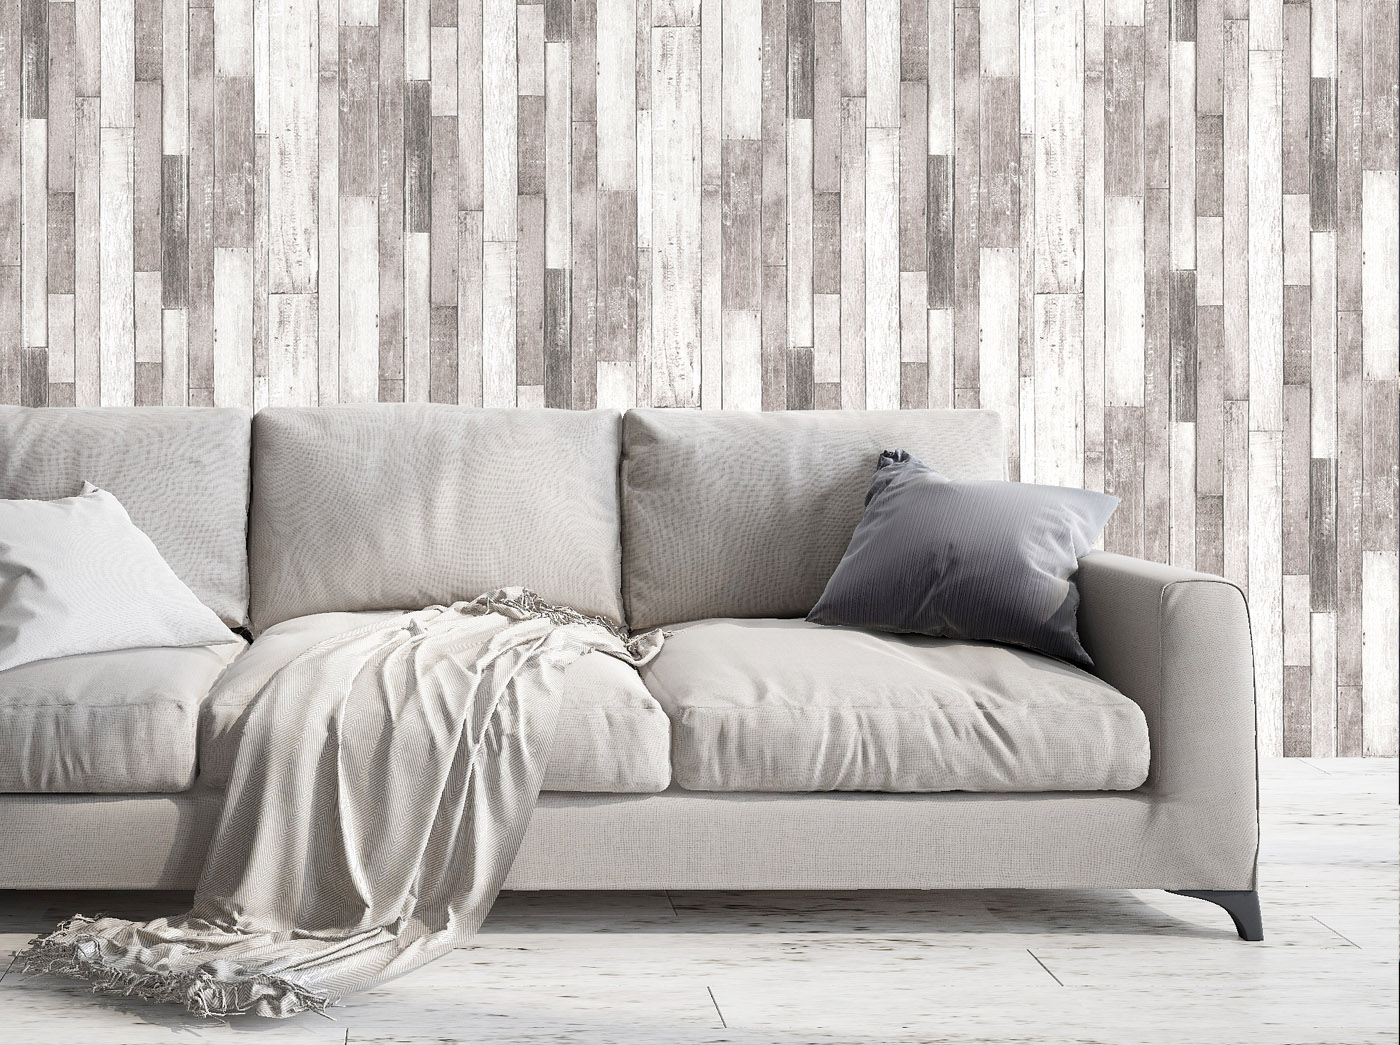 Rustic Wood Effect Panel Wallpaper Grey and White